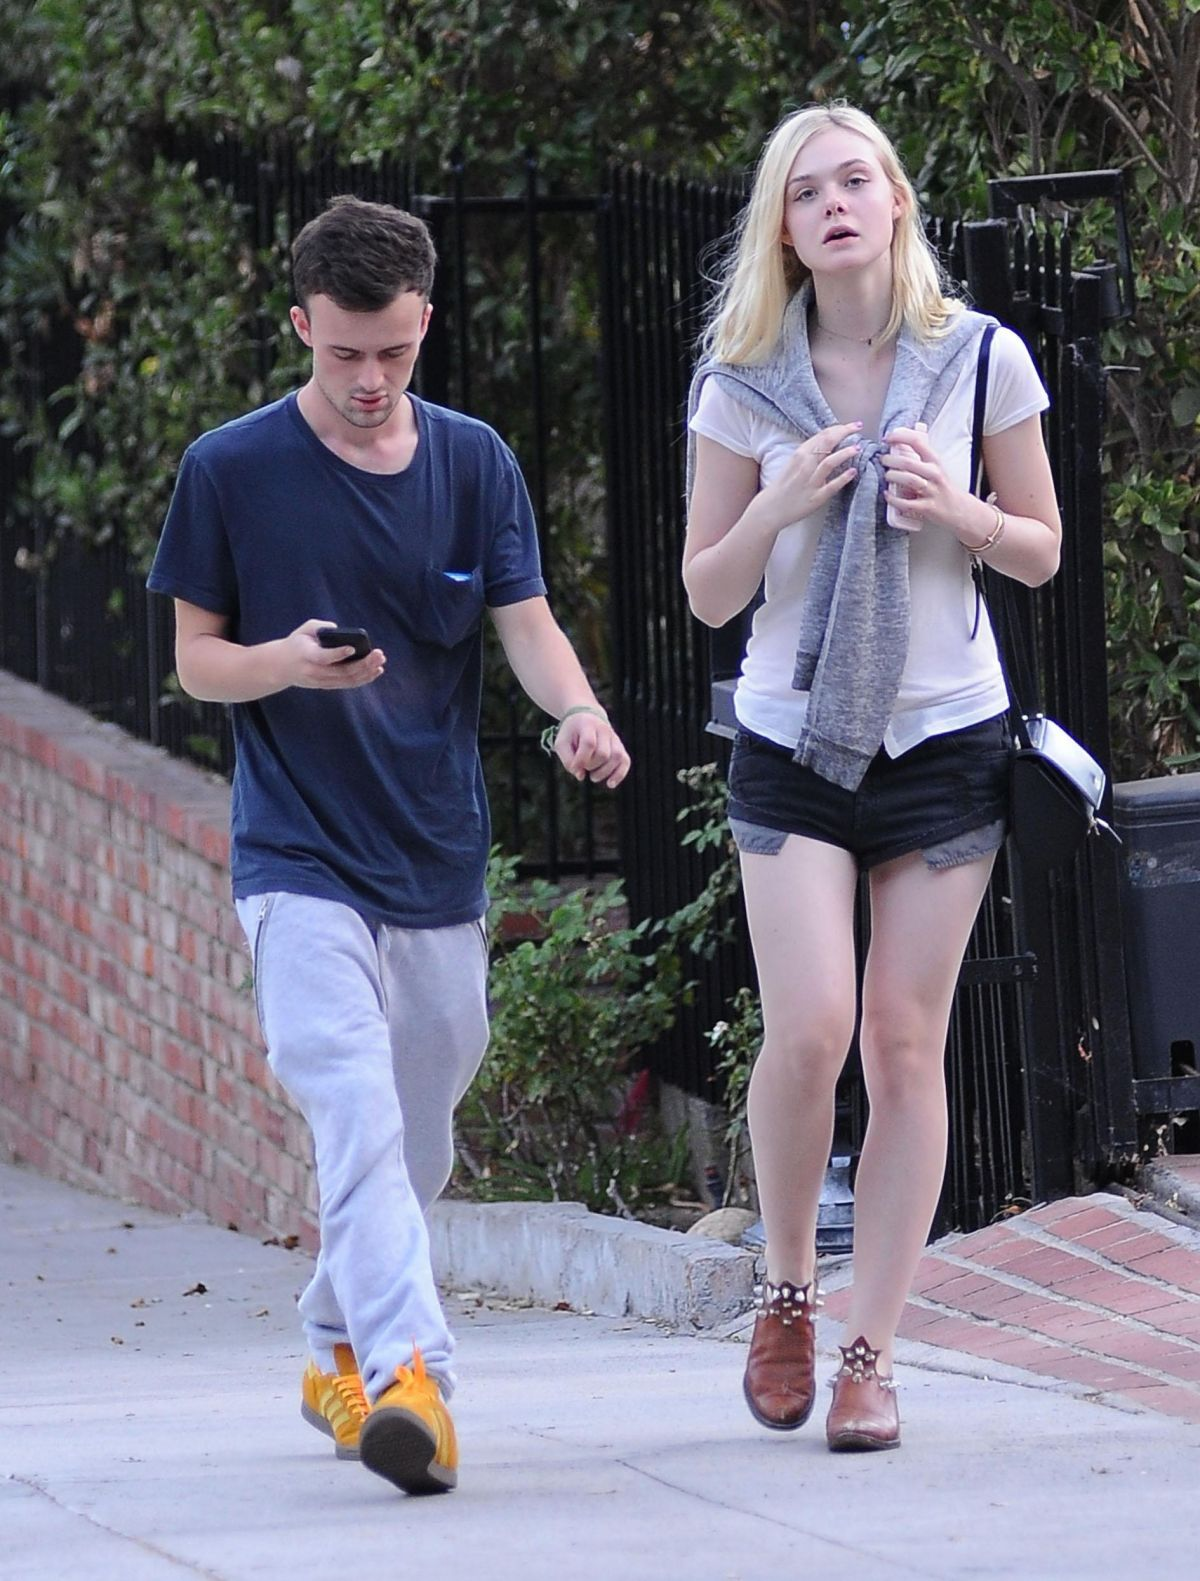 elle fanning dating How much is elle fanning worth in 2018 check out the actress her net how rich is elle fanning net worth, salary, houses, cars + is she married, dating or gay.